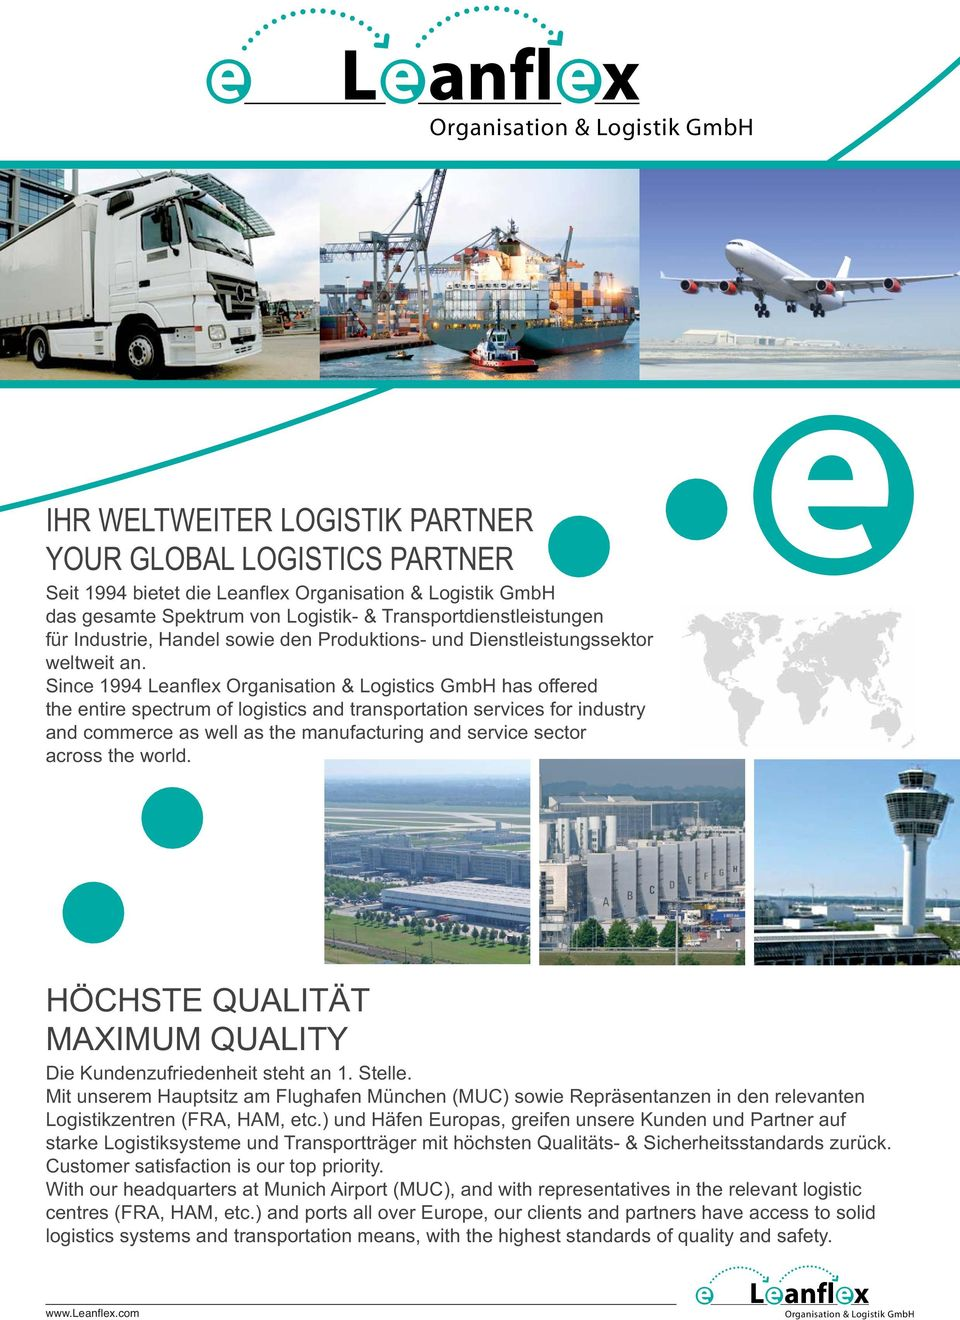 Since 1994 Leanflex Organisation & Logistics GmbH has offered the entire spectrum of logistics and transportation services for industry and commerce as well as the manufacturing and service sector